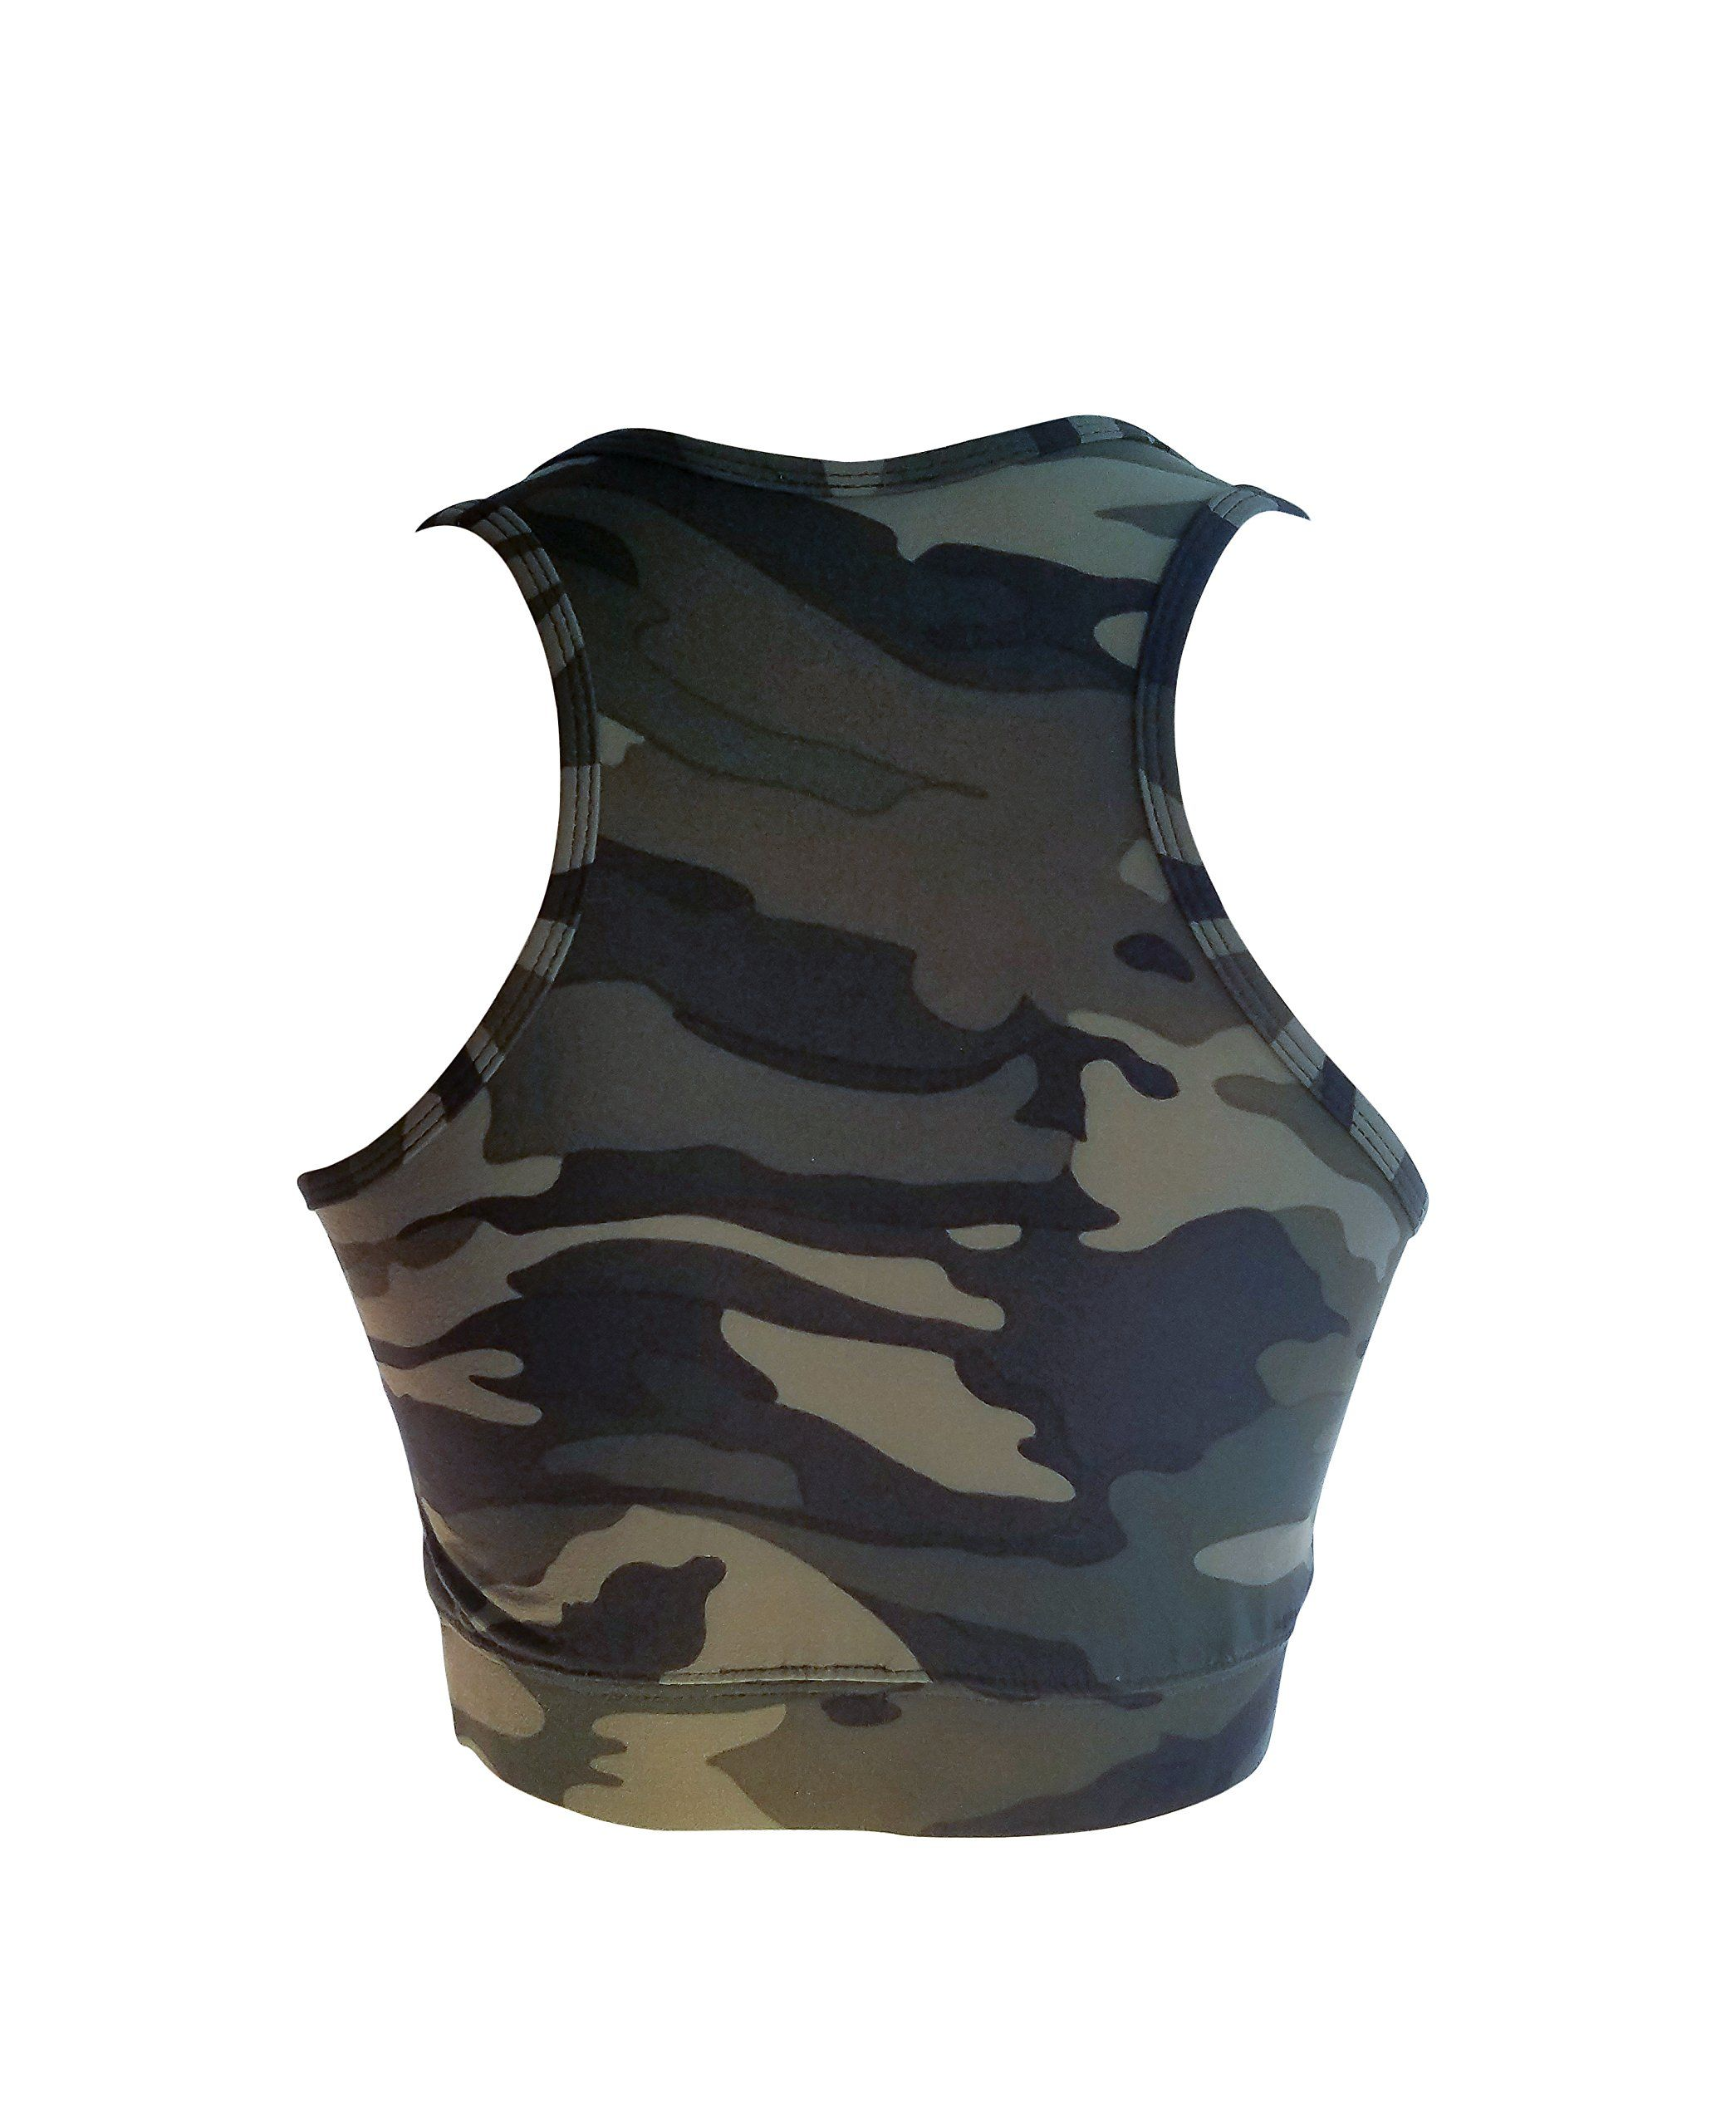 5abbd2ecb5 bluensquare Racerback Sports Bra For Women Camouflage Removable Pad Yoga  Gym Fitness Crop Top Camouflage